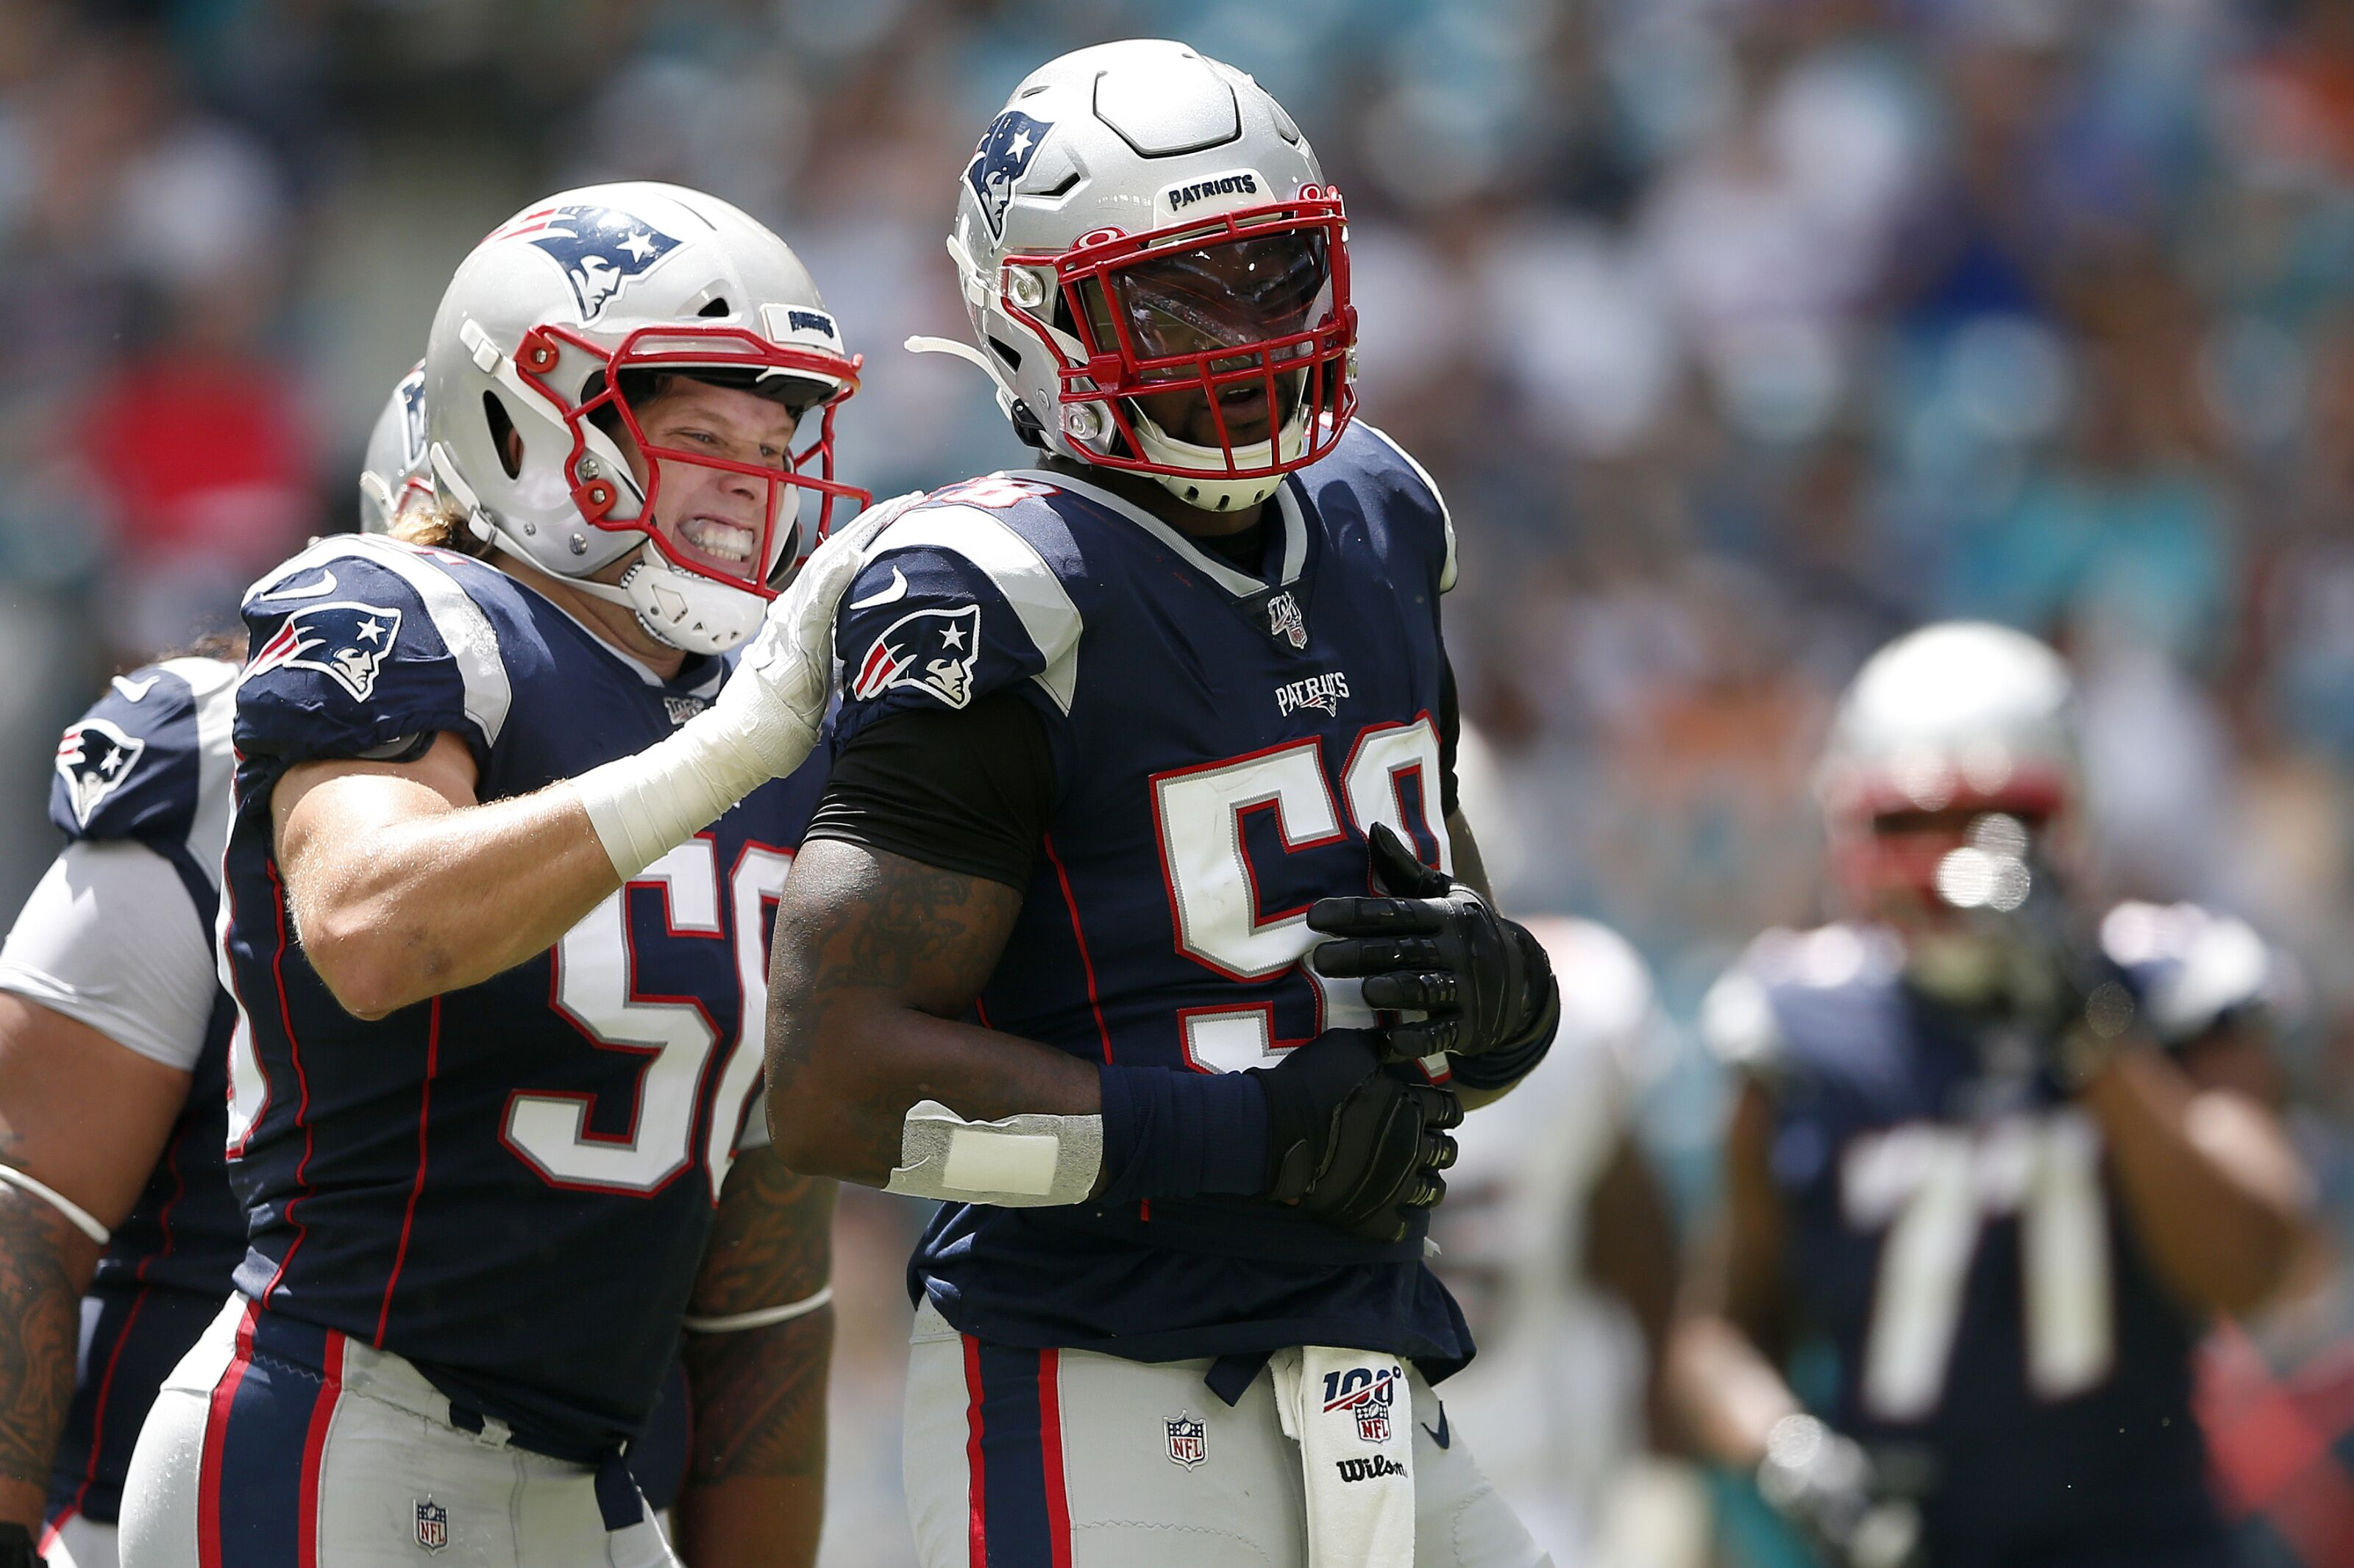 New England Patriots vs Miami Dolphins: What are the injuries?